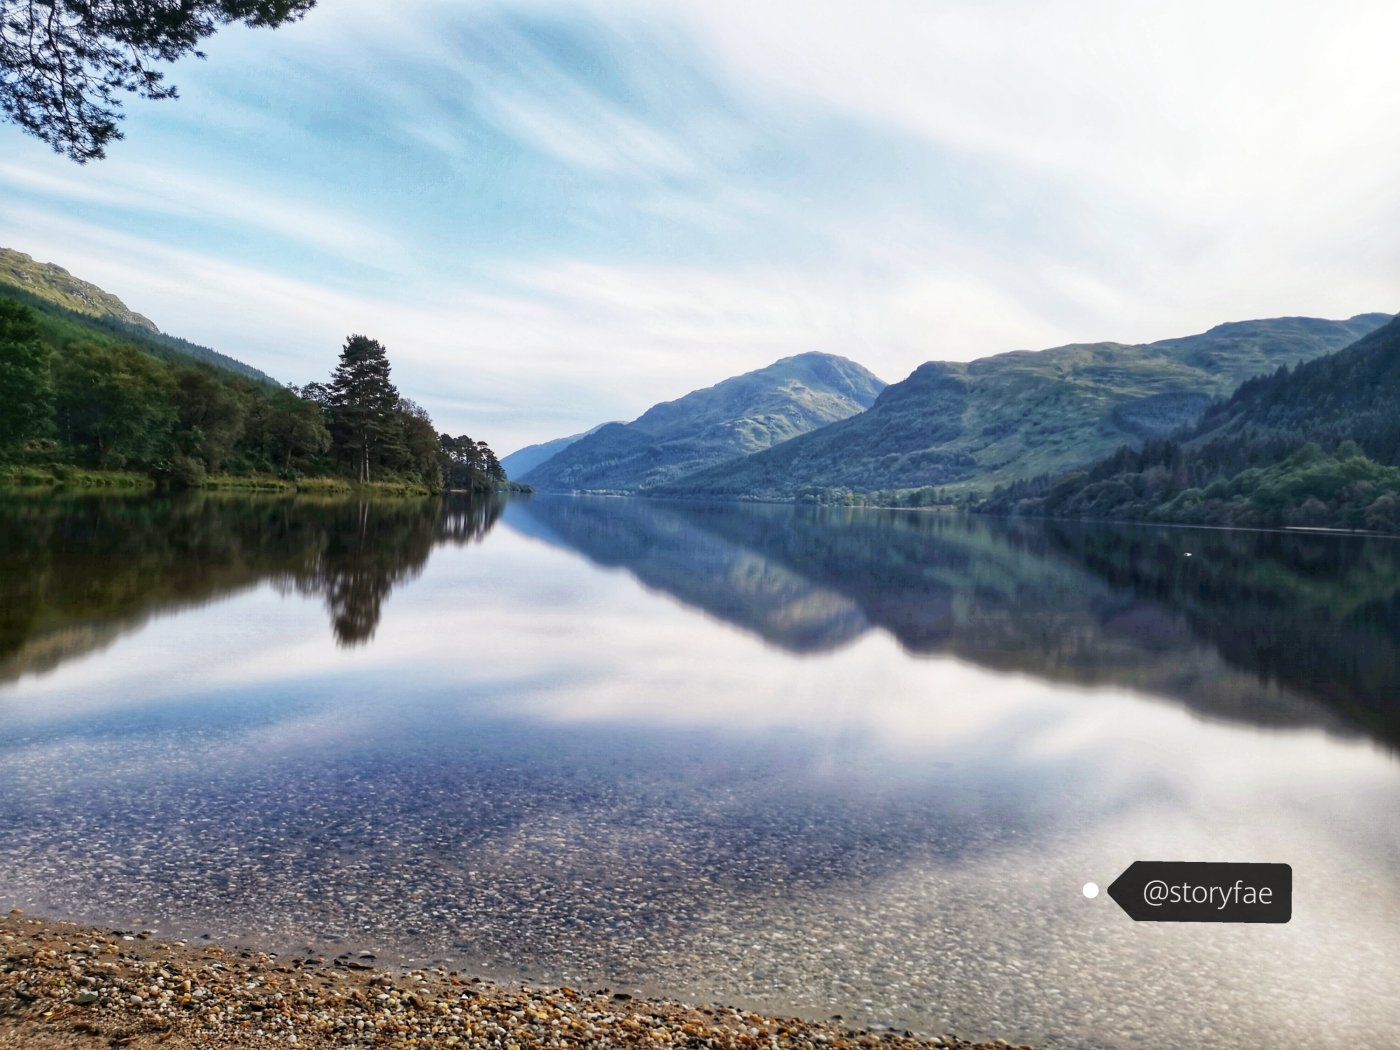 view over loch Eck and a chain of hills